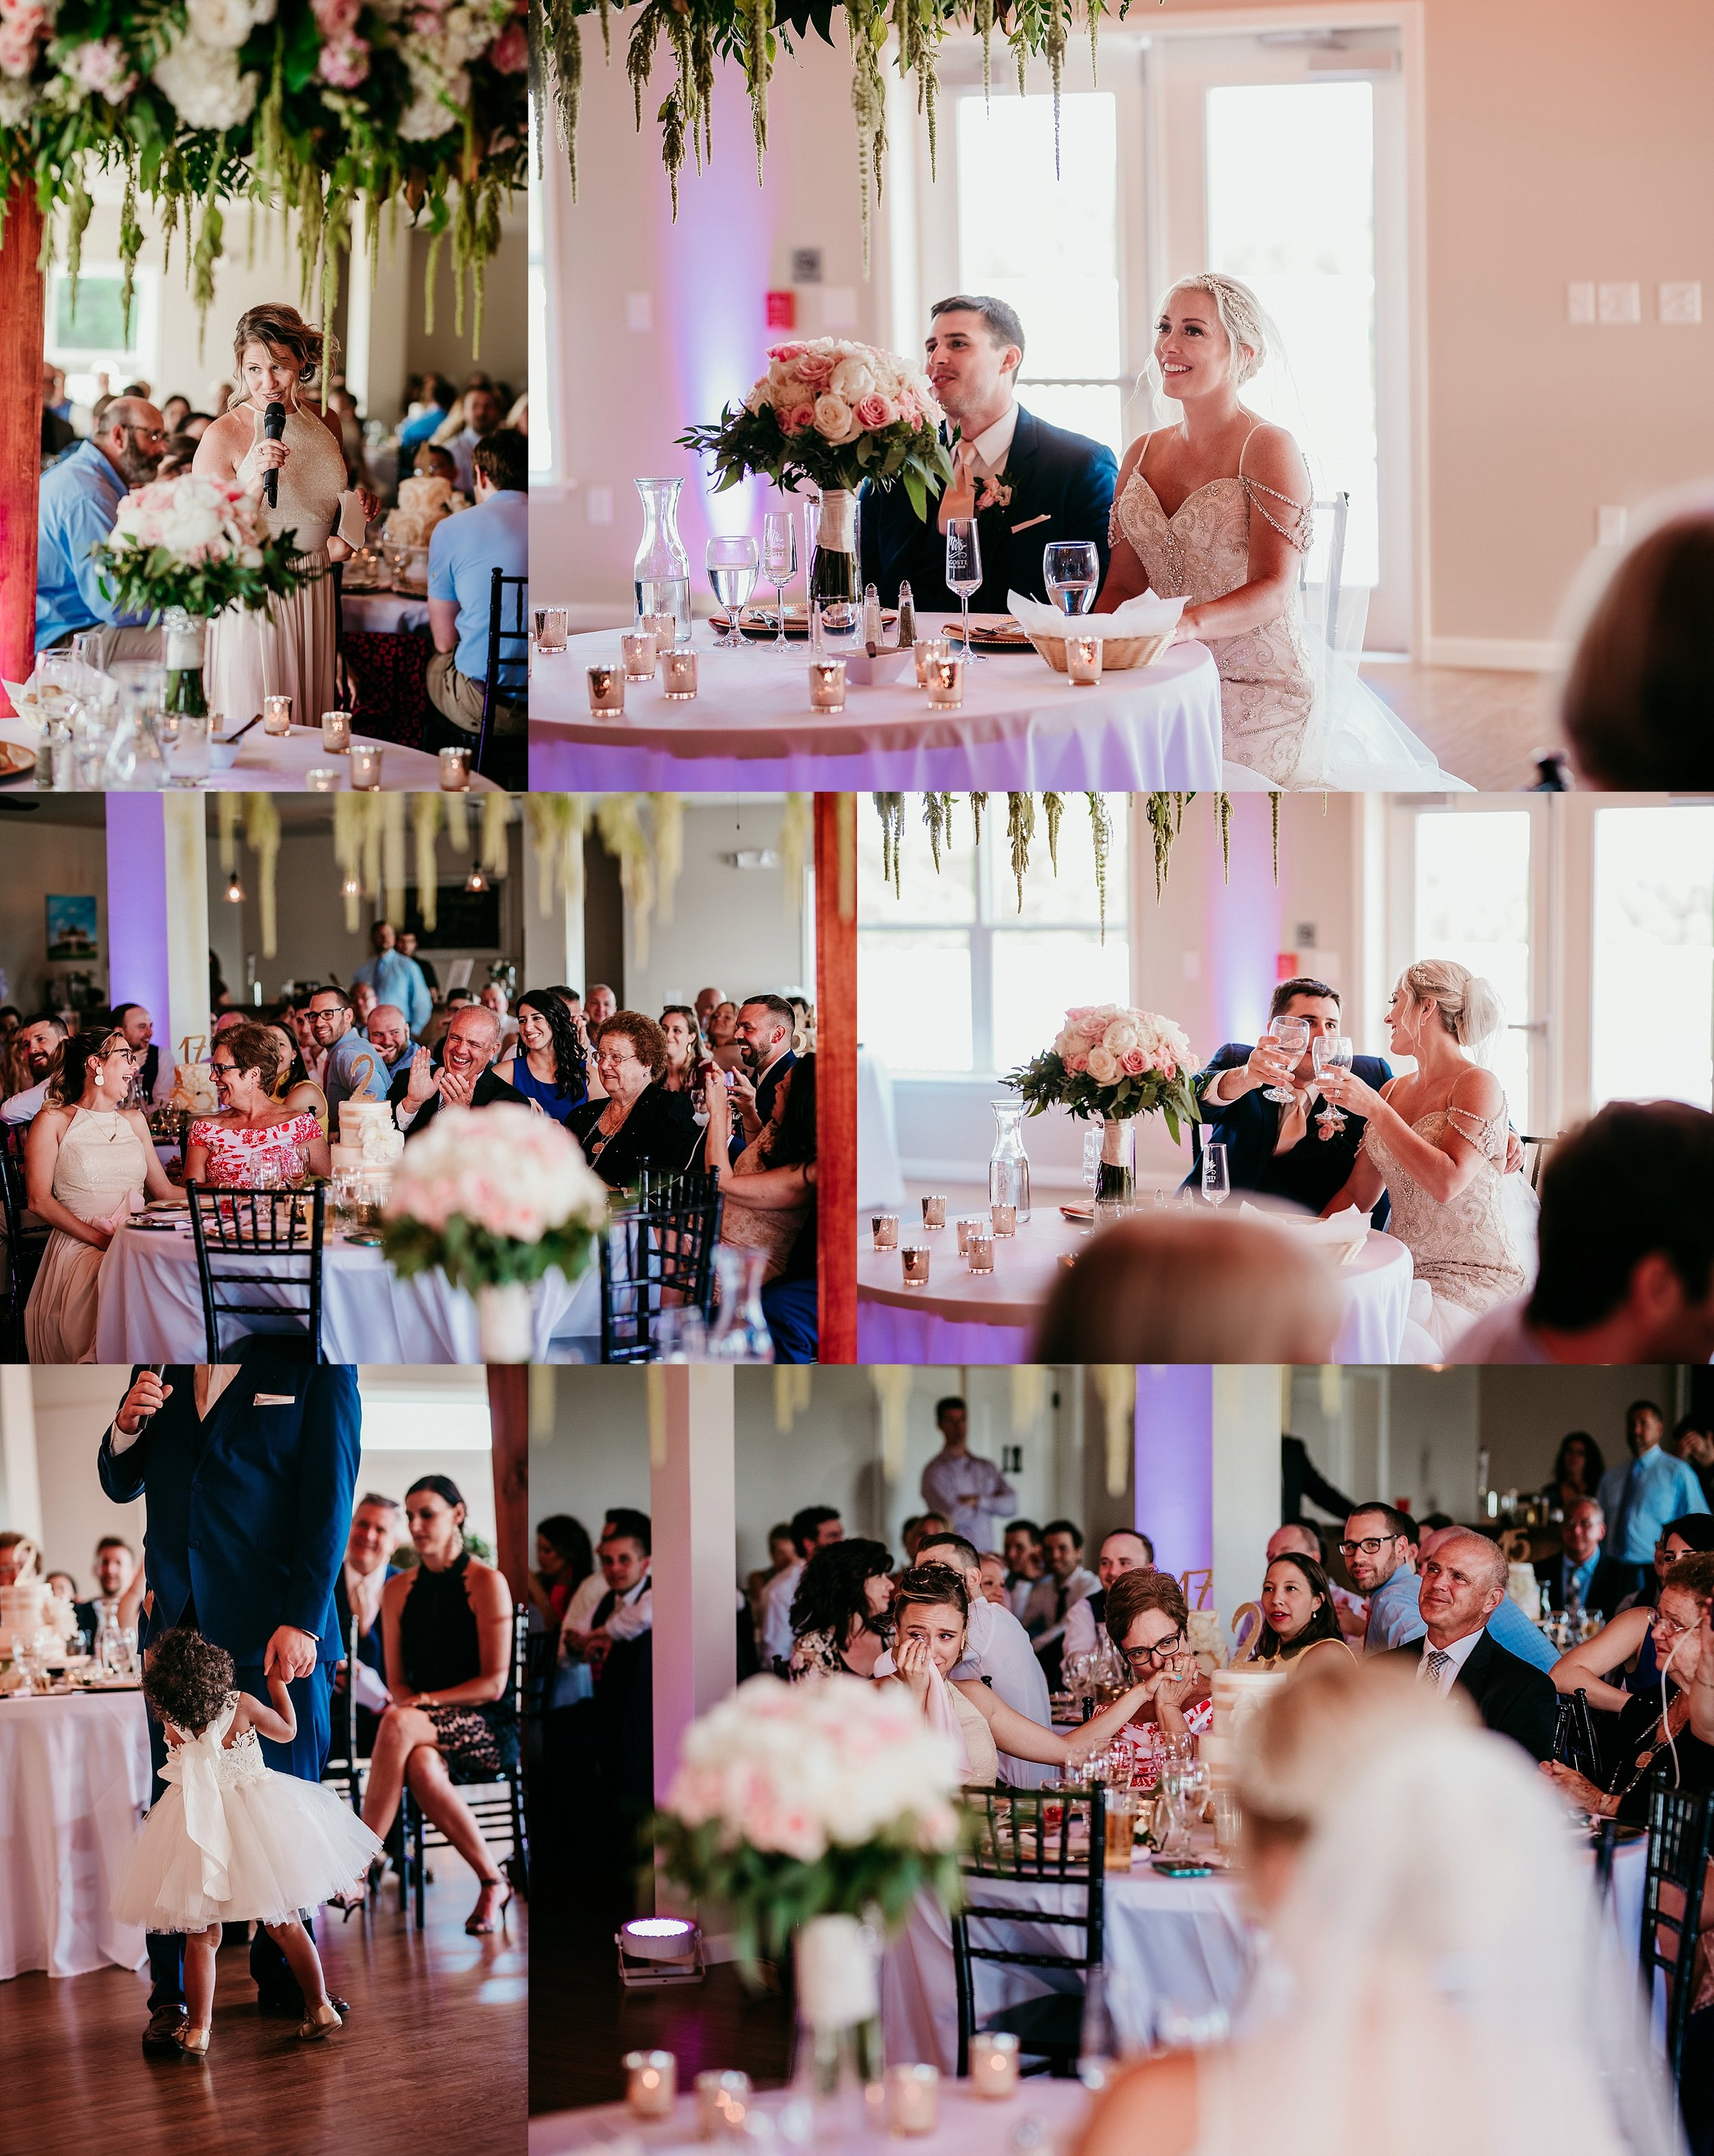 So much emotion in the room. It's clear how loved this sweet couple is. <3